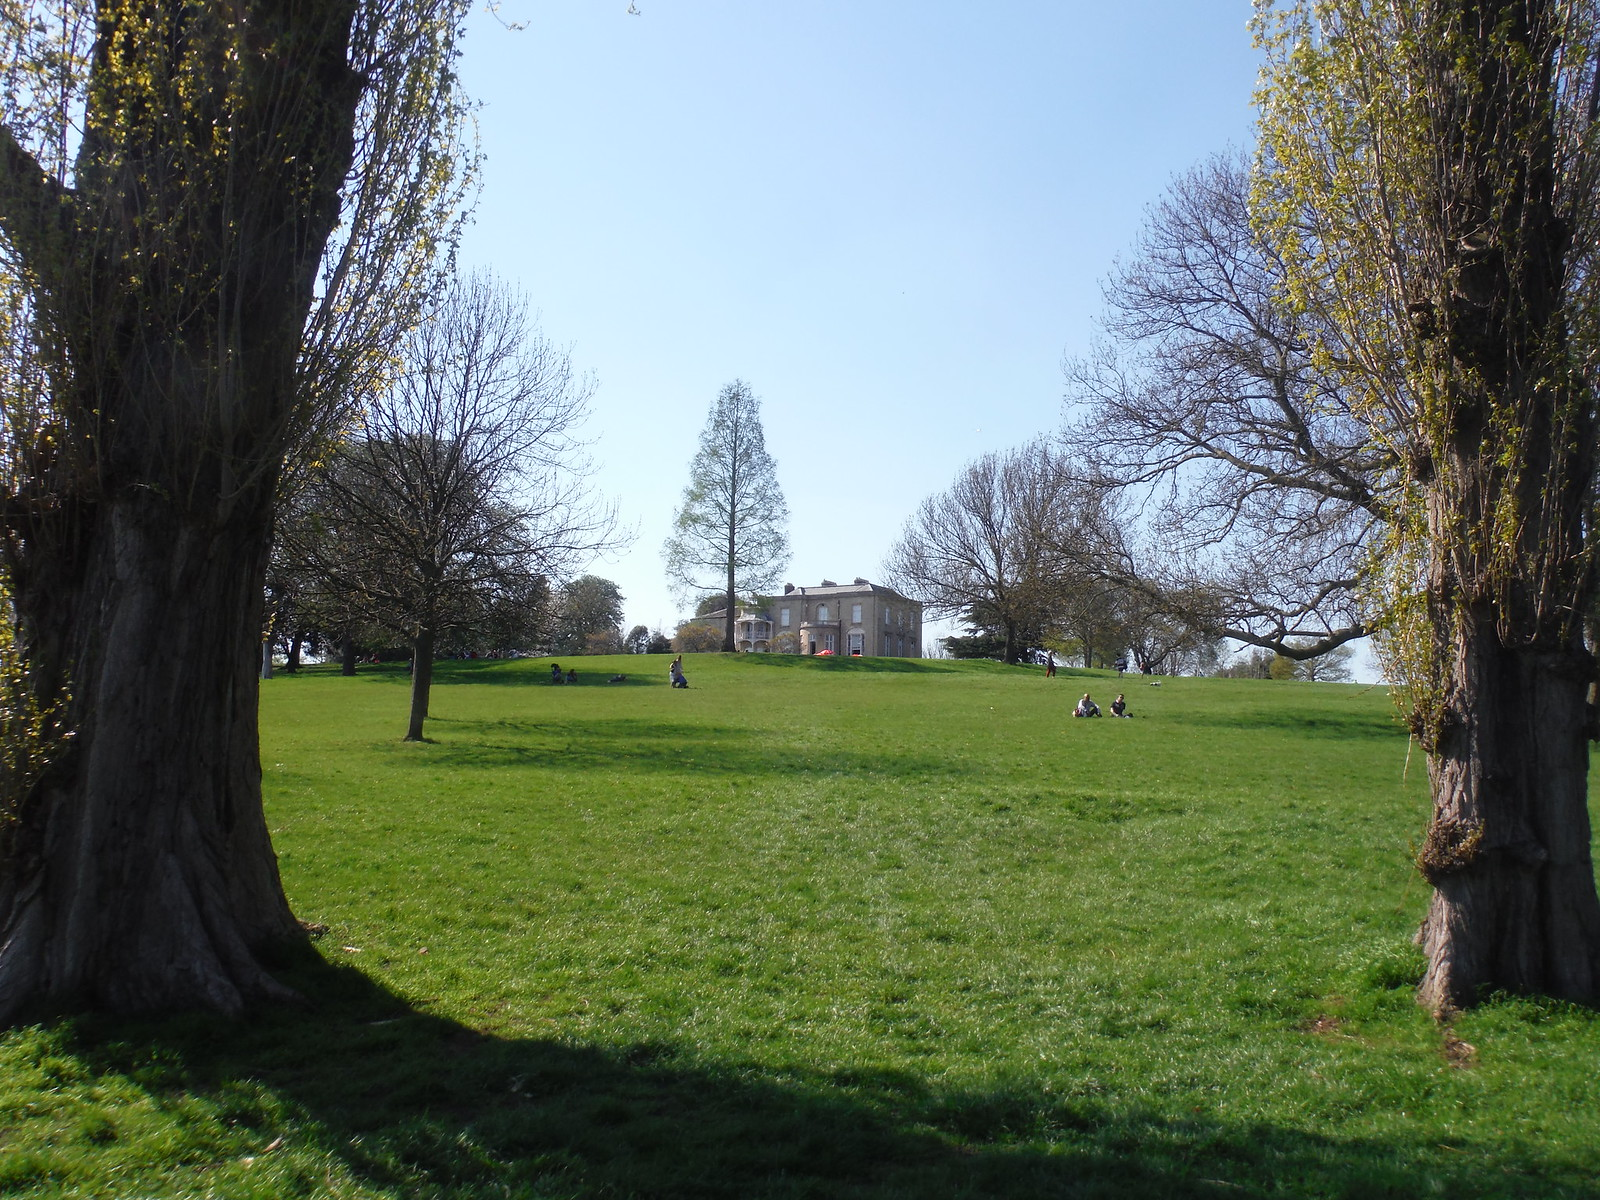 Brockwell Hall SWC Short Walk 39 - Brockwell Park (Herne Hill Circular or to Brixton)